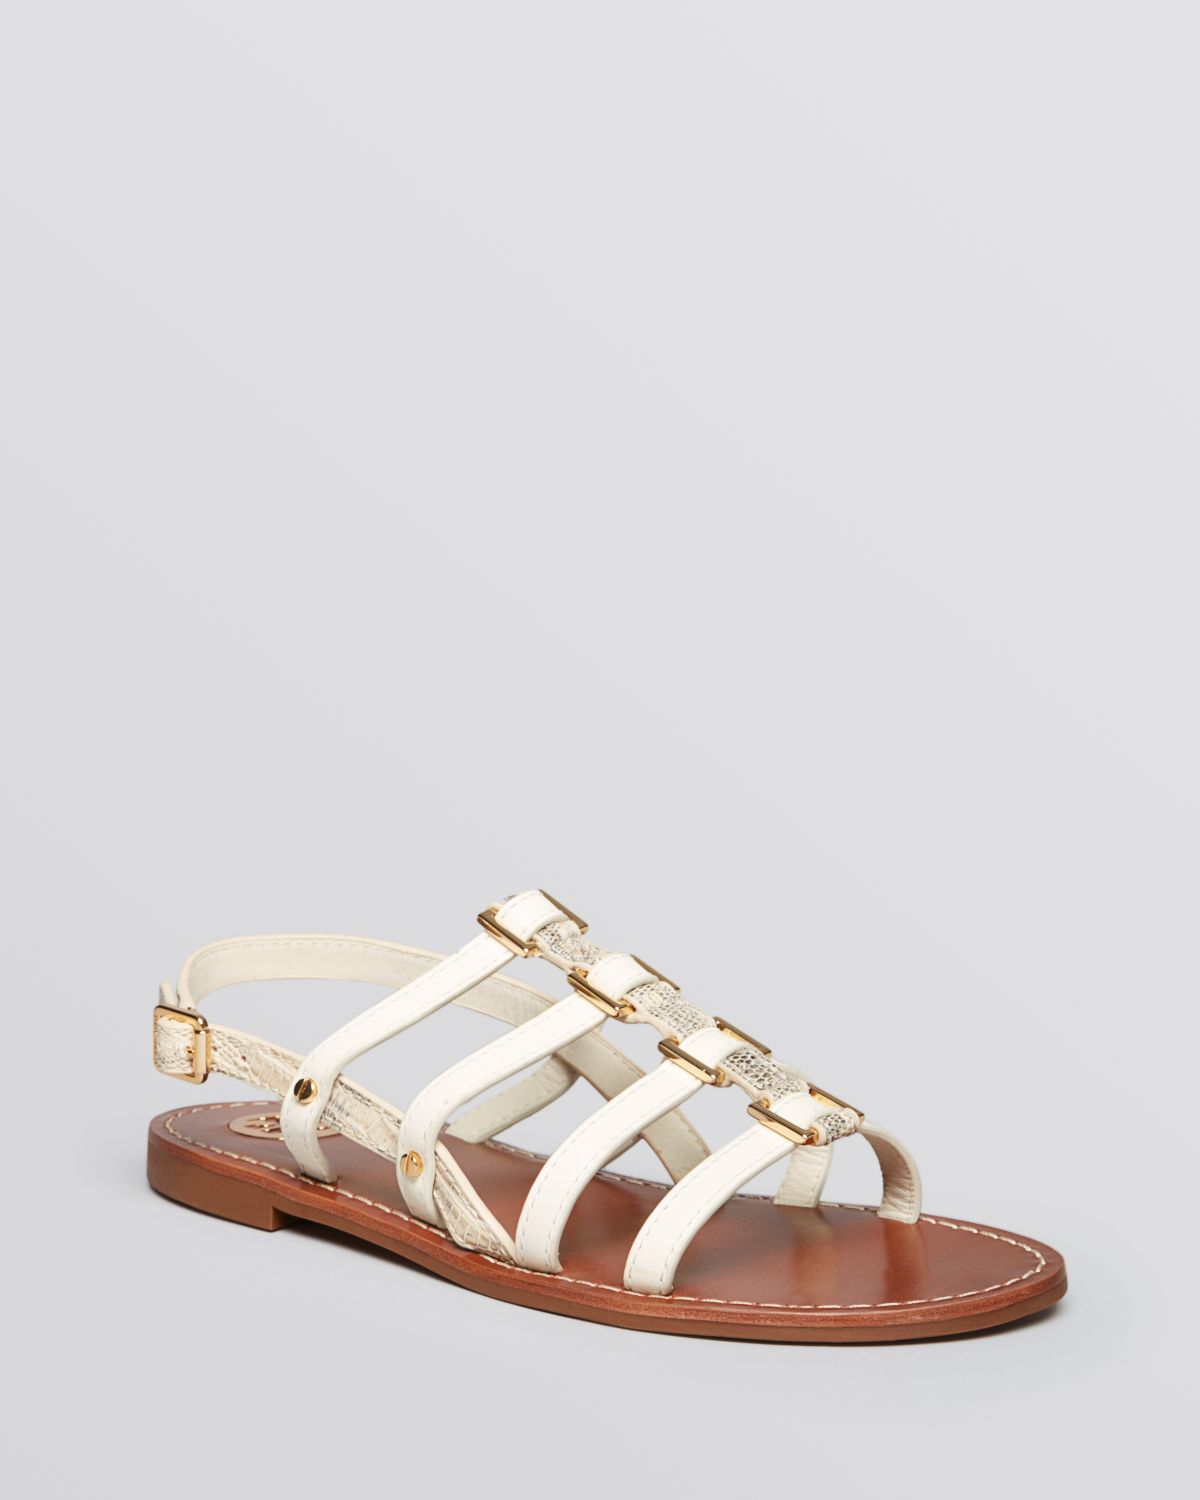 55754b4a6 Lyst - Tory Burch Flat Gladiator Sandals Reggie in Natural